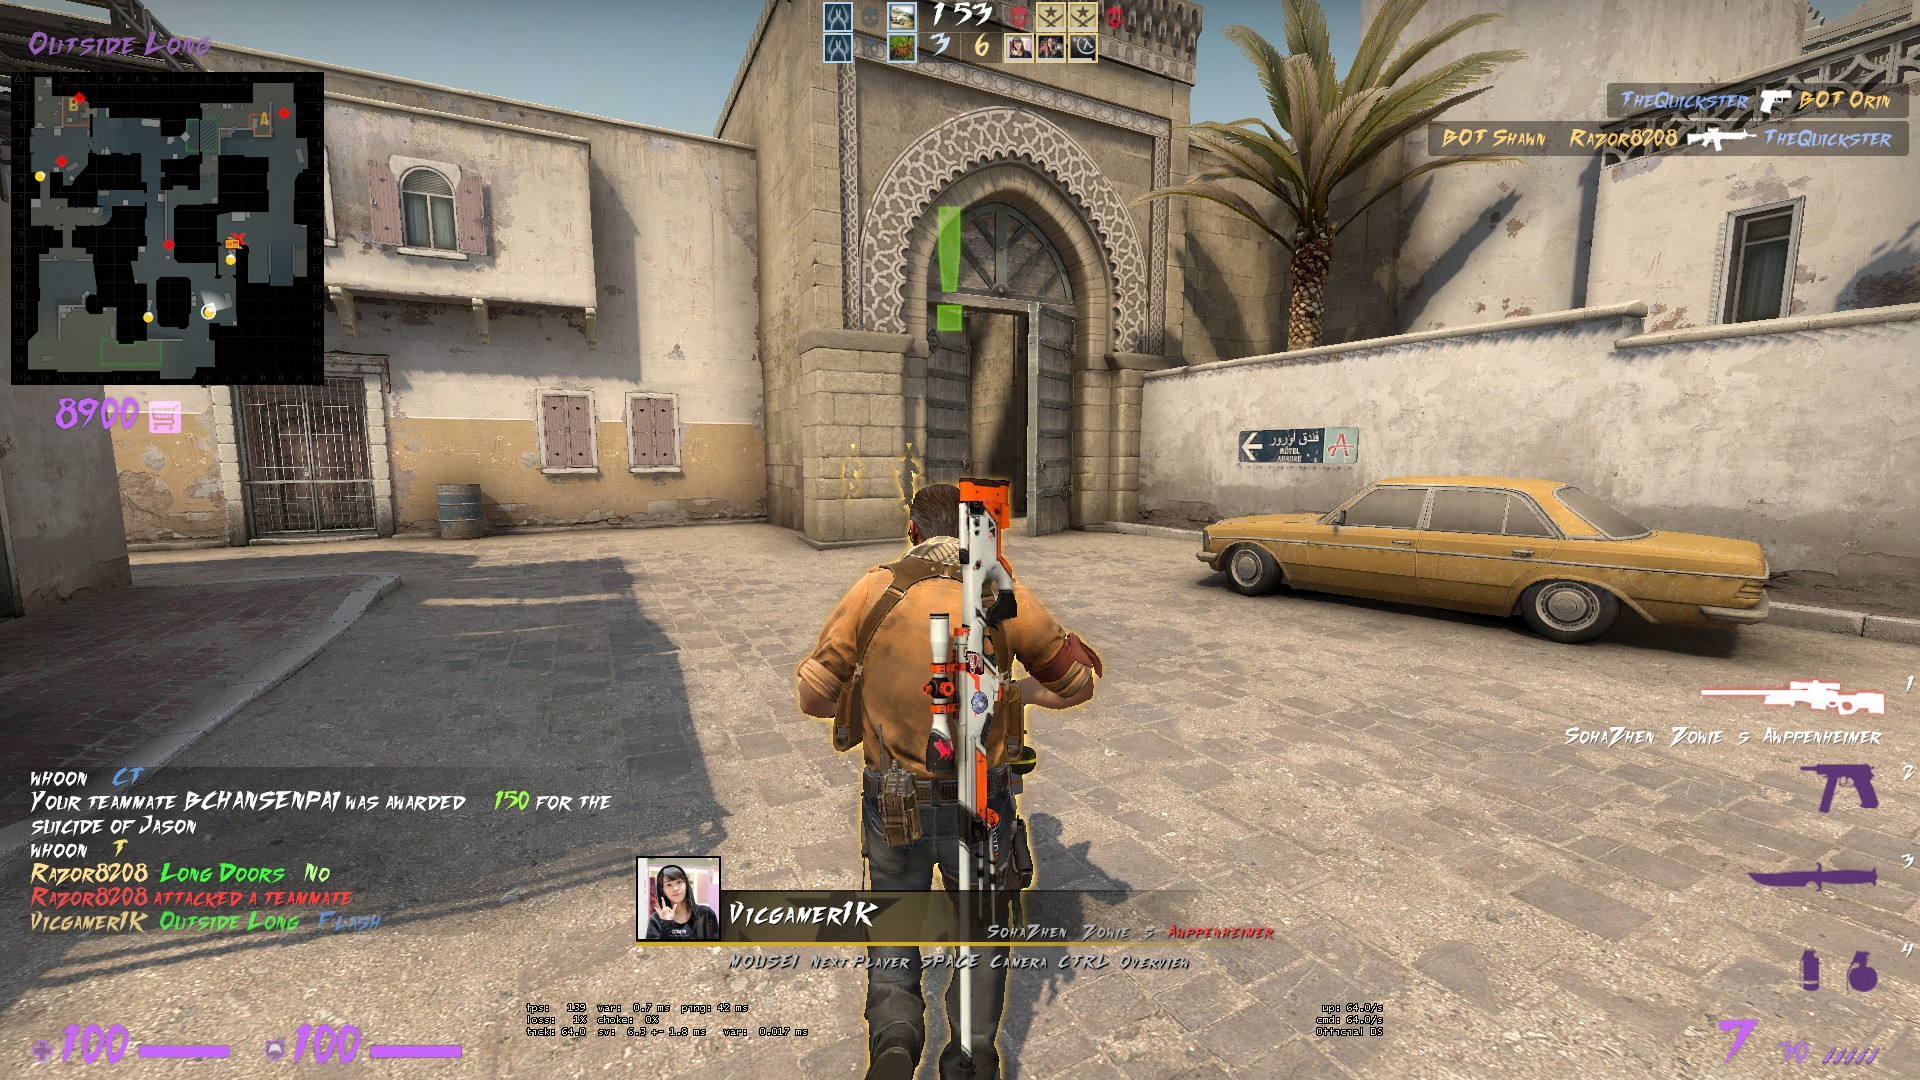 Steam Community :: Guide :: How to get custom fonts in CSGO